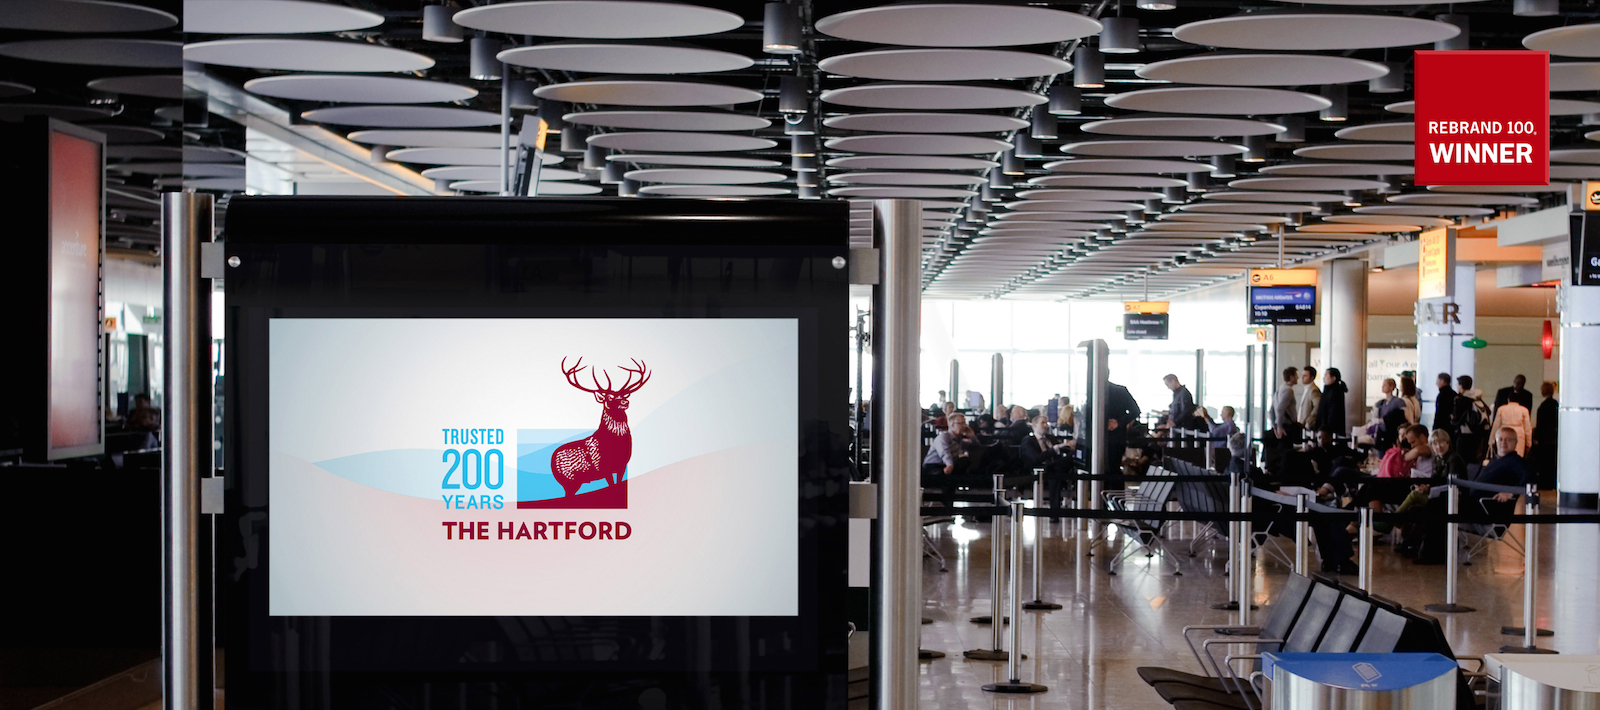 Trusted 200 years - The Hartford